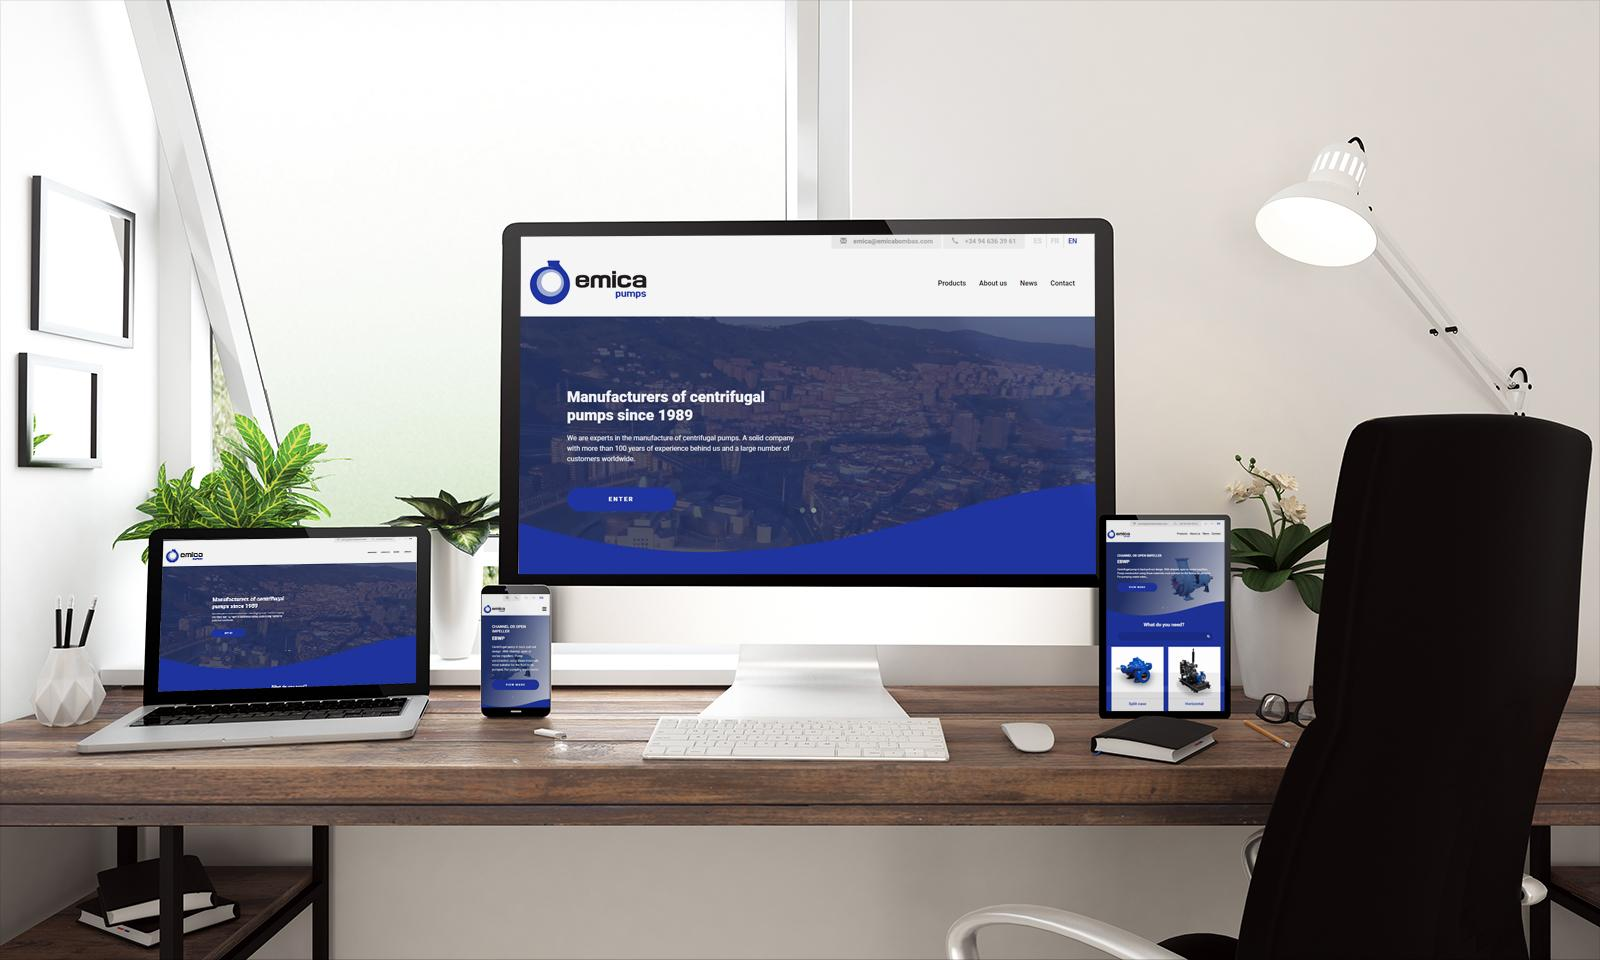 Emica launches a new website